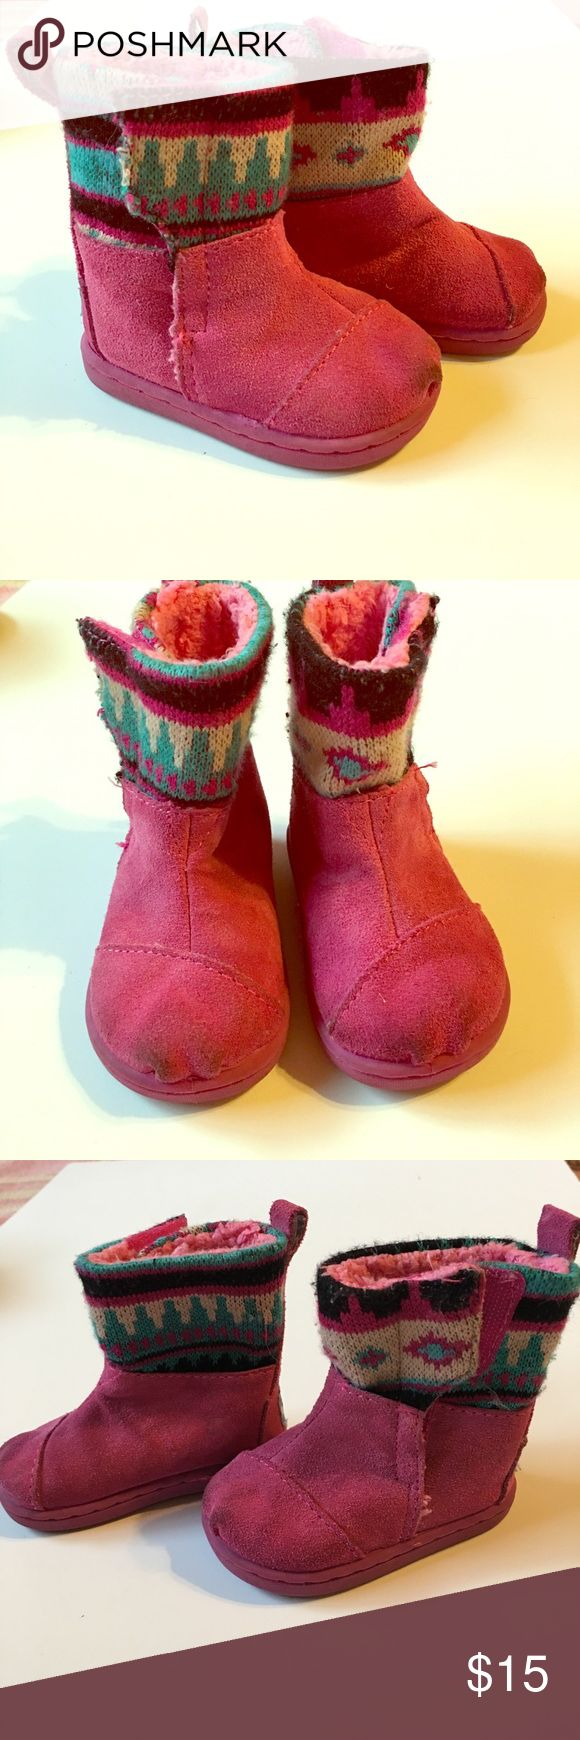 Tiny Toms Nepal Boots - pink suede - size 4 Tiny Toms Nepal Pink Suede Boots in size 4 toddler. Velcro closure and faux fur lining. Some marks on tip of toes (see pictures). Super adorable for your little girl! TOMS Shoes Boots